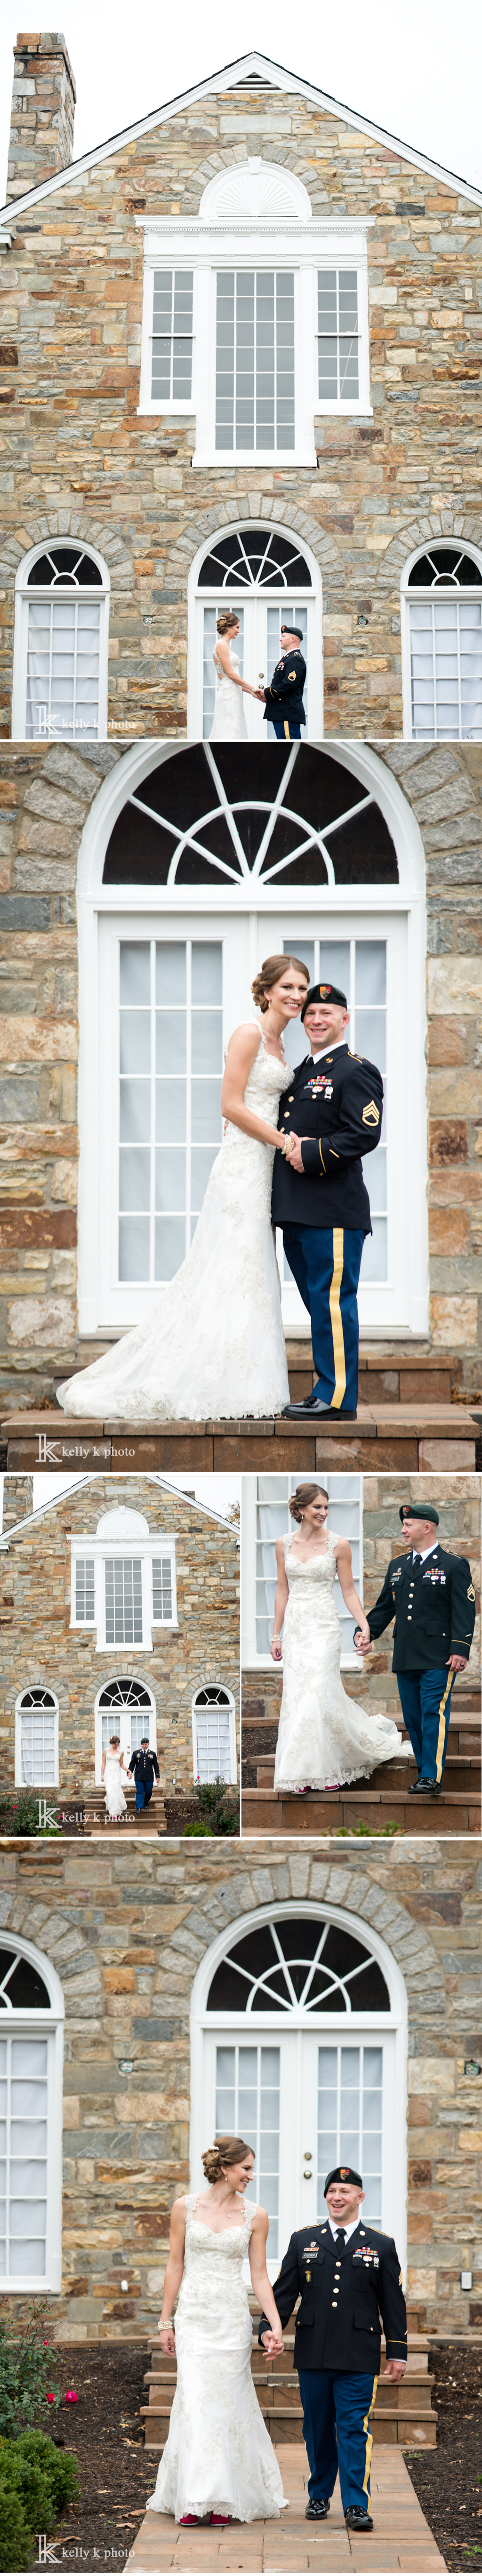 KellyKPhoto_WeddingPhotography_HudsonWI_3